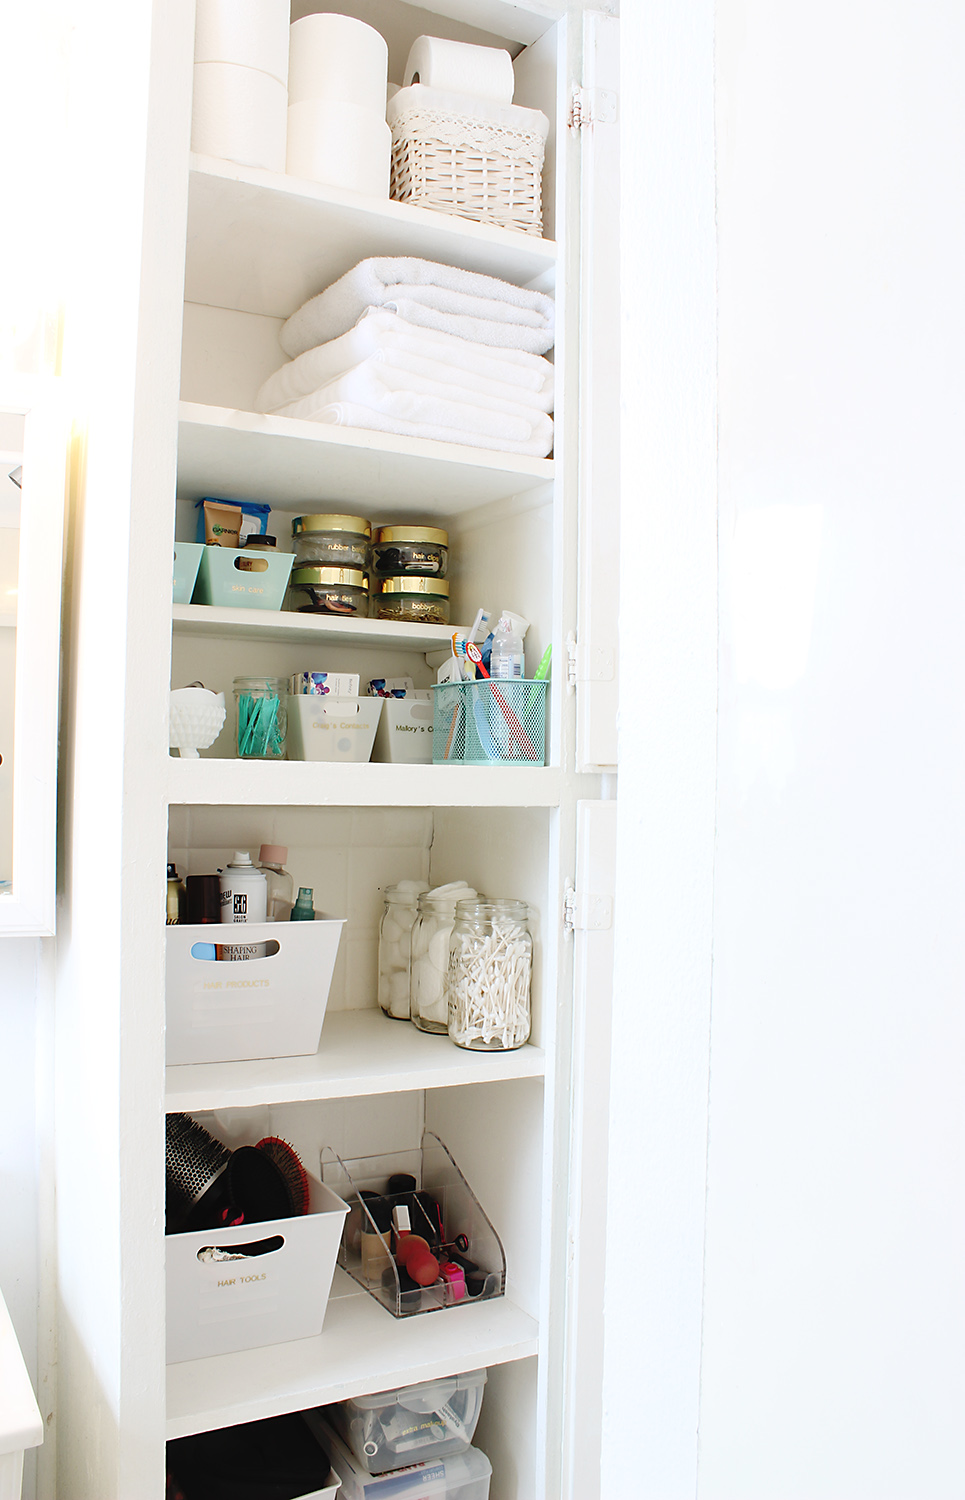 13 Quick and Easy Bathroom Organization Tips - Classy Clutter